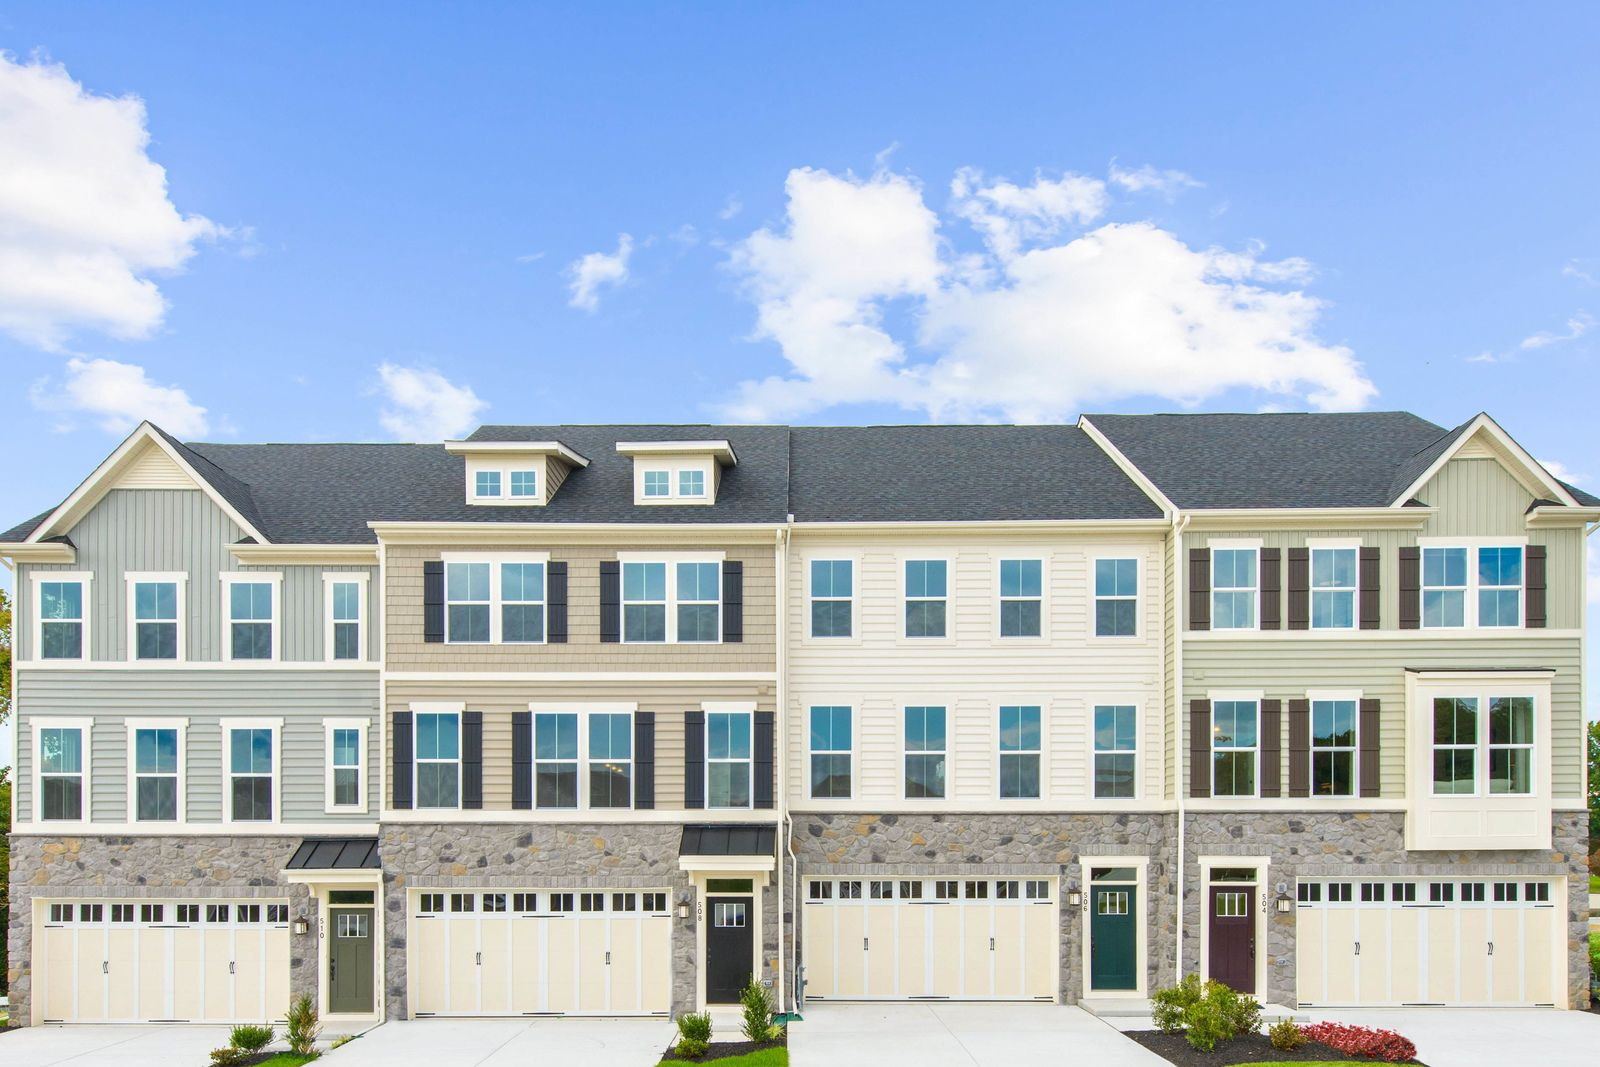 JOIN THE VIP LIST TO GET THE LATEST UPDATES:Coming Soon Spring 2021! Spacious 24' Wide Garage Townhomes with backyards from the $400s. Located only 1 mile to Downtown Frederick, 2 minutes to I-70 & I-270.Join the VIP List.